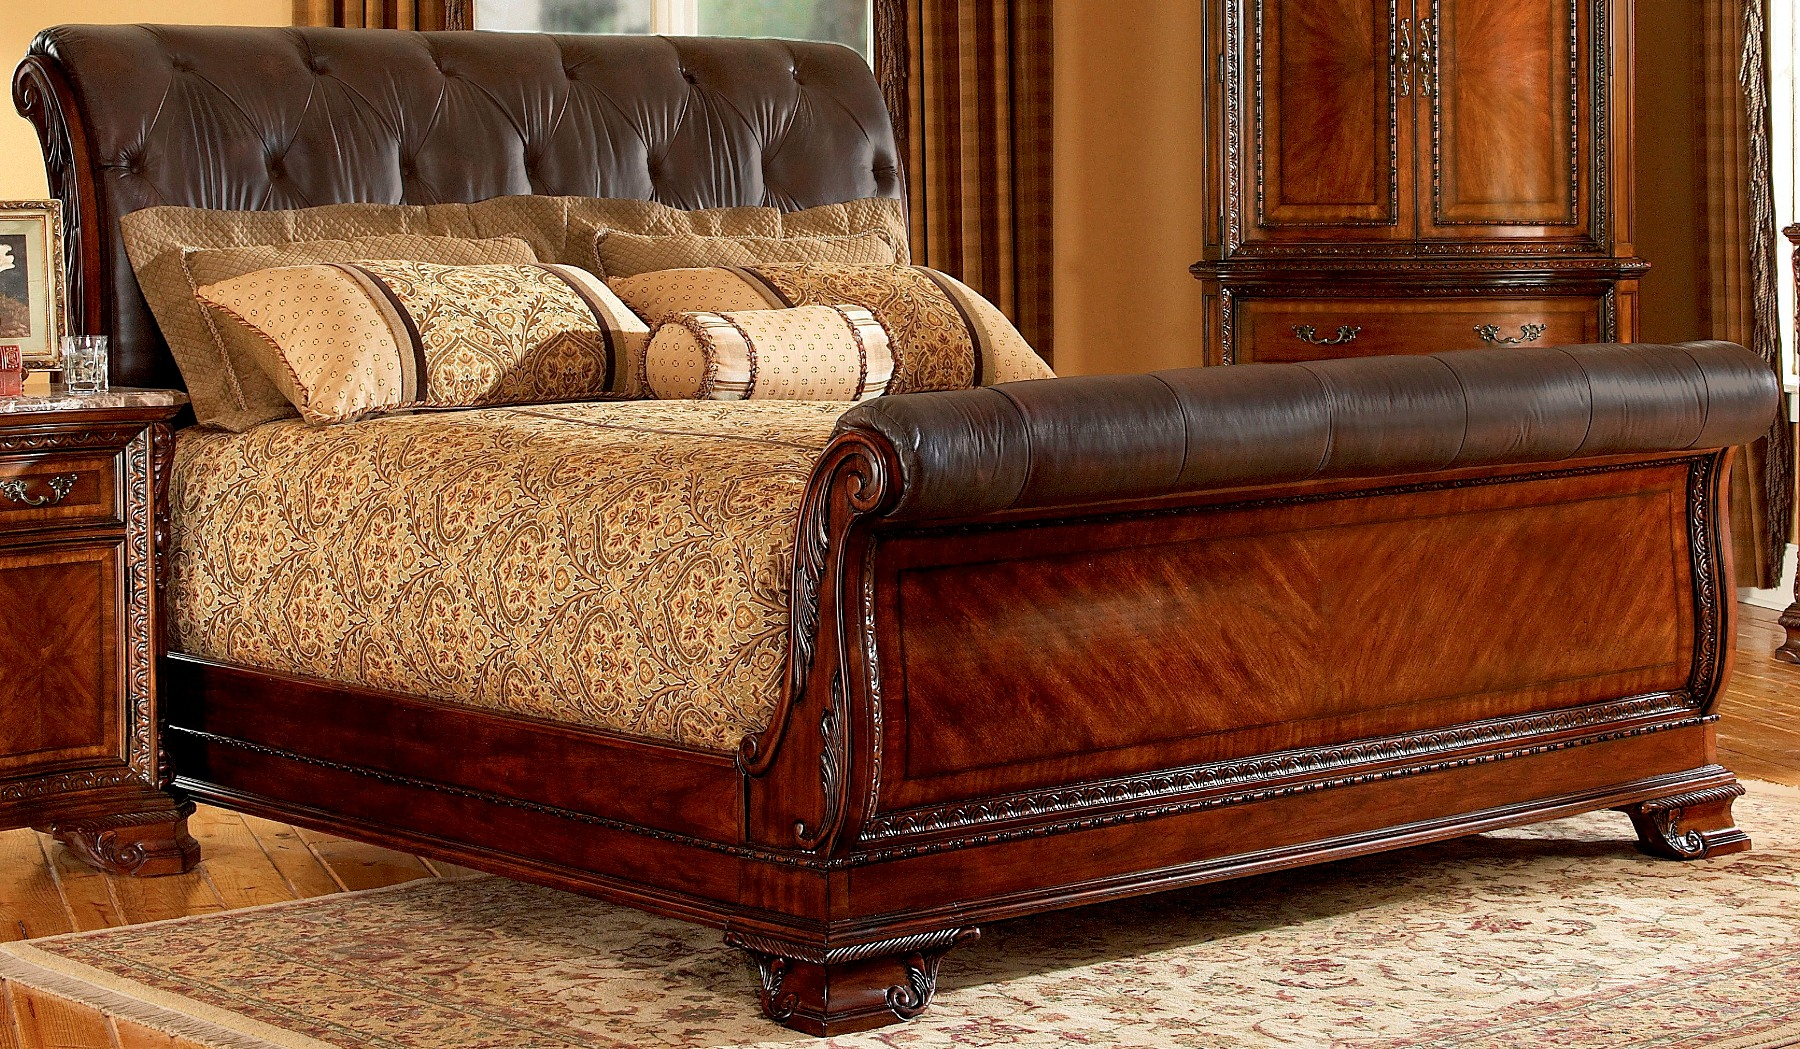 Mesmerizing headboars king sleigh bed with royal duvet cover and luxury sheets also unique area rug above laminate flooring ideas